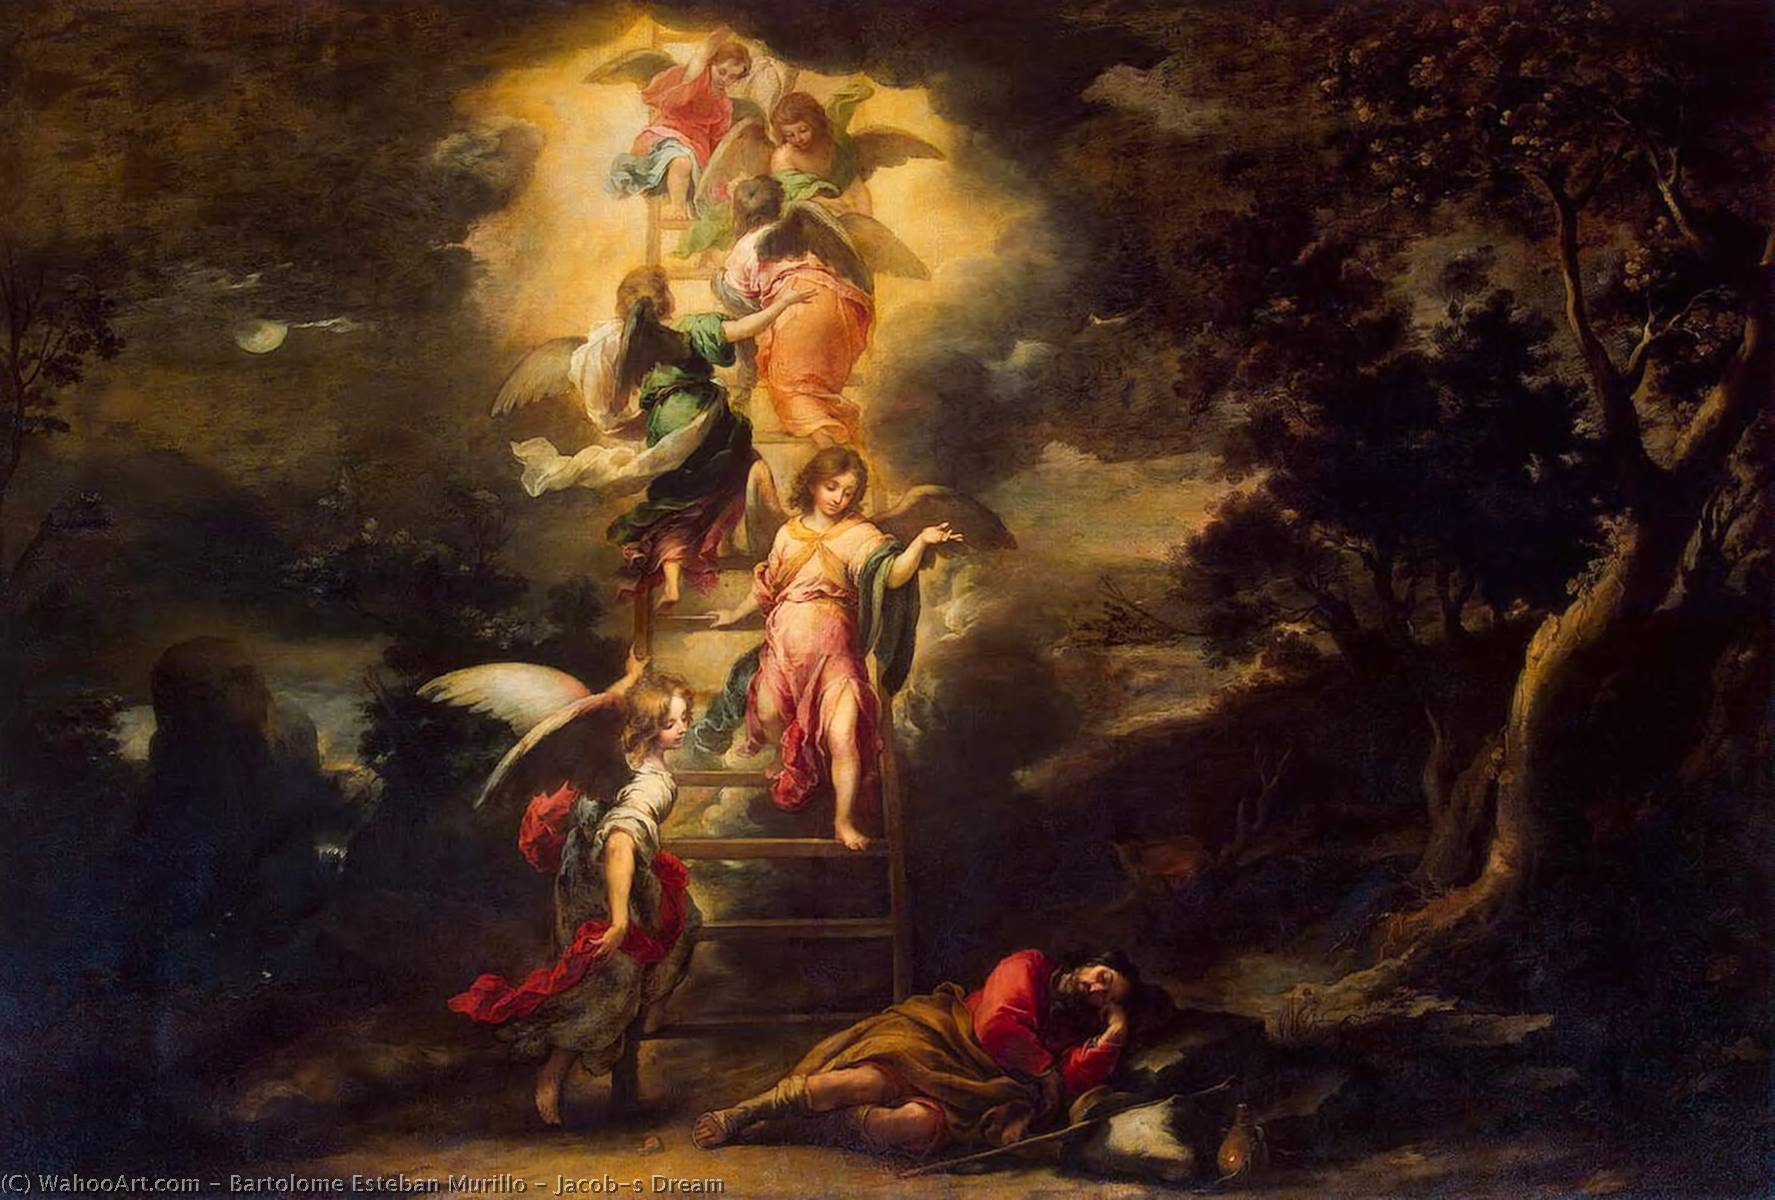 bartolome-esteban-murillo-jacob-s-dream.jpg